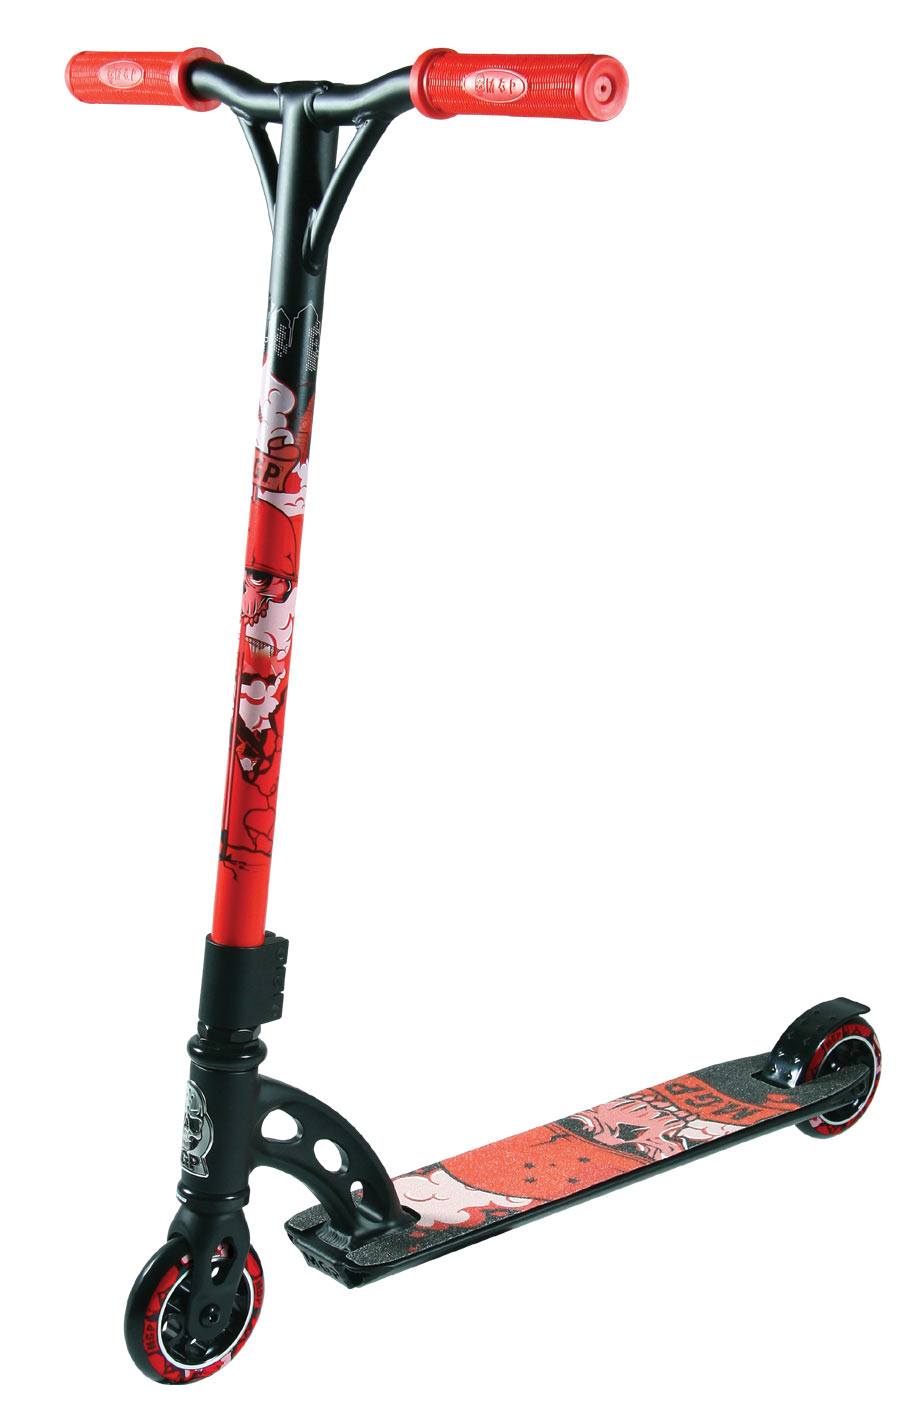 madd mpg team edition vx3 stuntscooter kick scooter. Black Bedroom Furniture Sets. Home Design Ideas